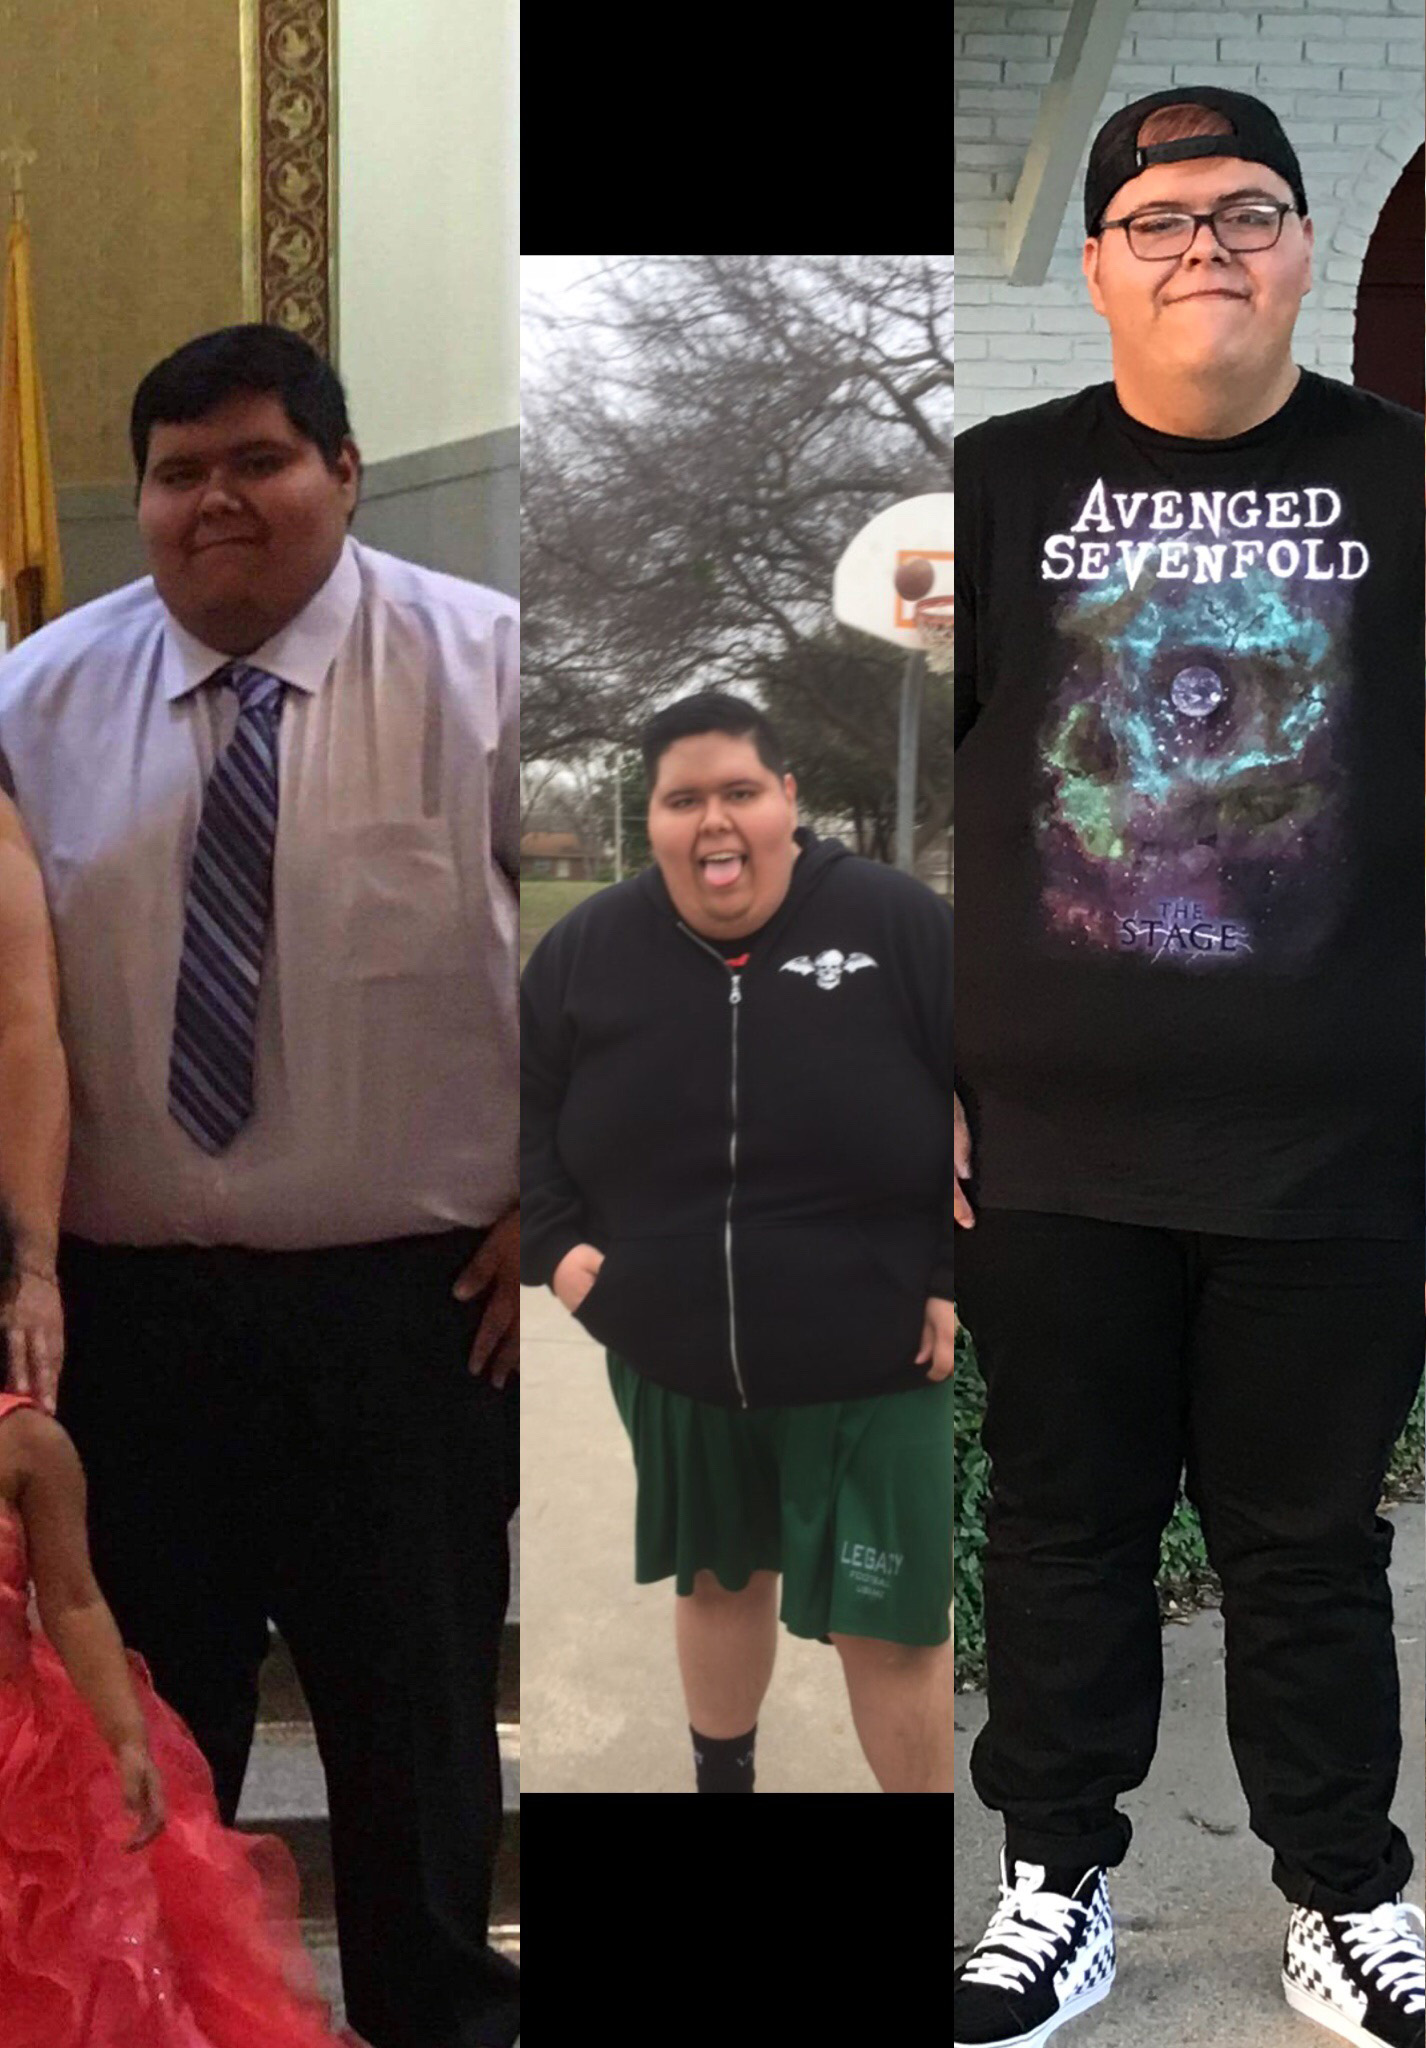 Guy before he lost weight